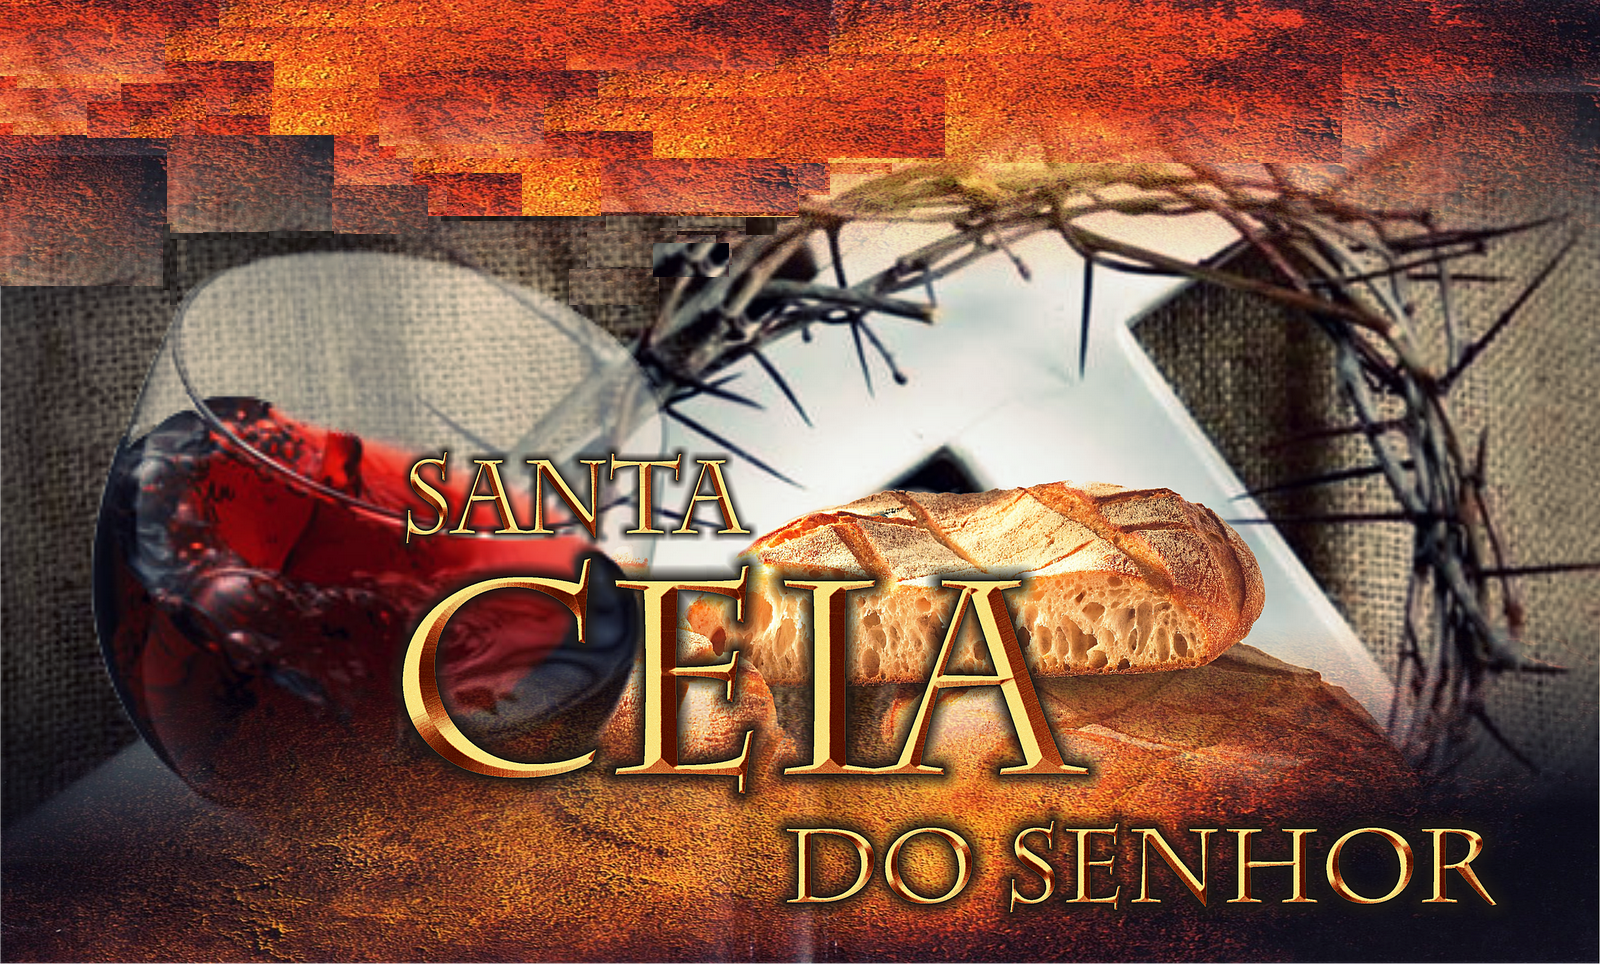 The Best Santa Ceia Do Senhor